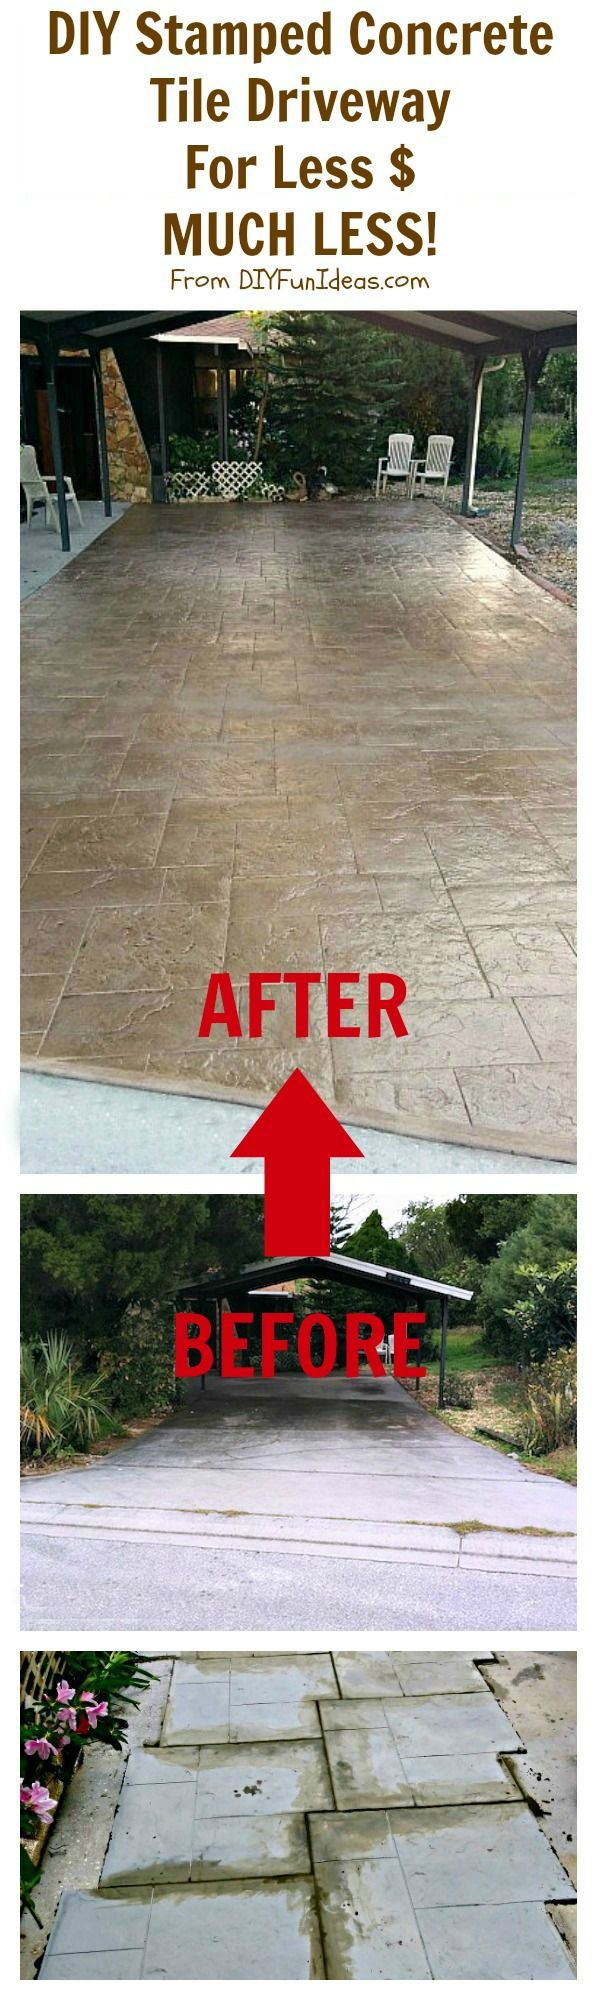 DIY STAMPED CONCRETE TILE DRIVEWAY FOR LESS $...MUCH LESS!!!  Great for patios & decks too! Even a novice can do this. #diy #concrete #dan330 http://livedan330.com/2015/03/24/diy-stamped-concrete-driveway/